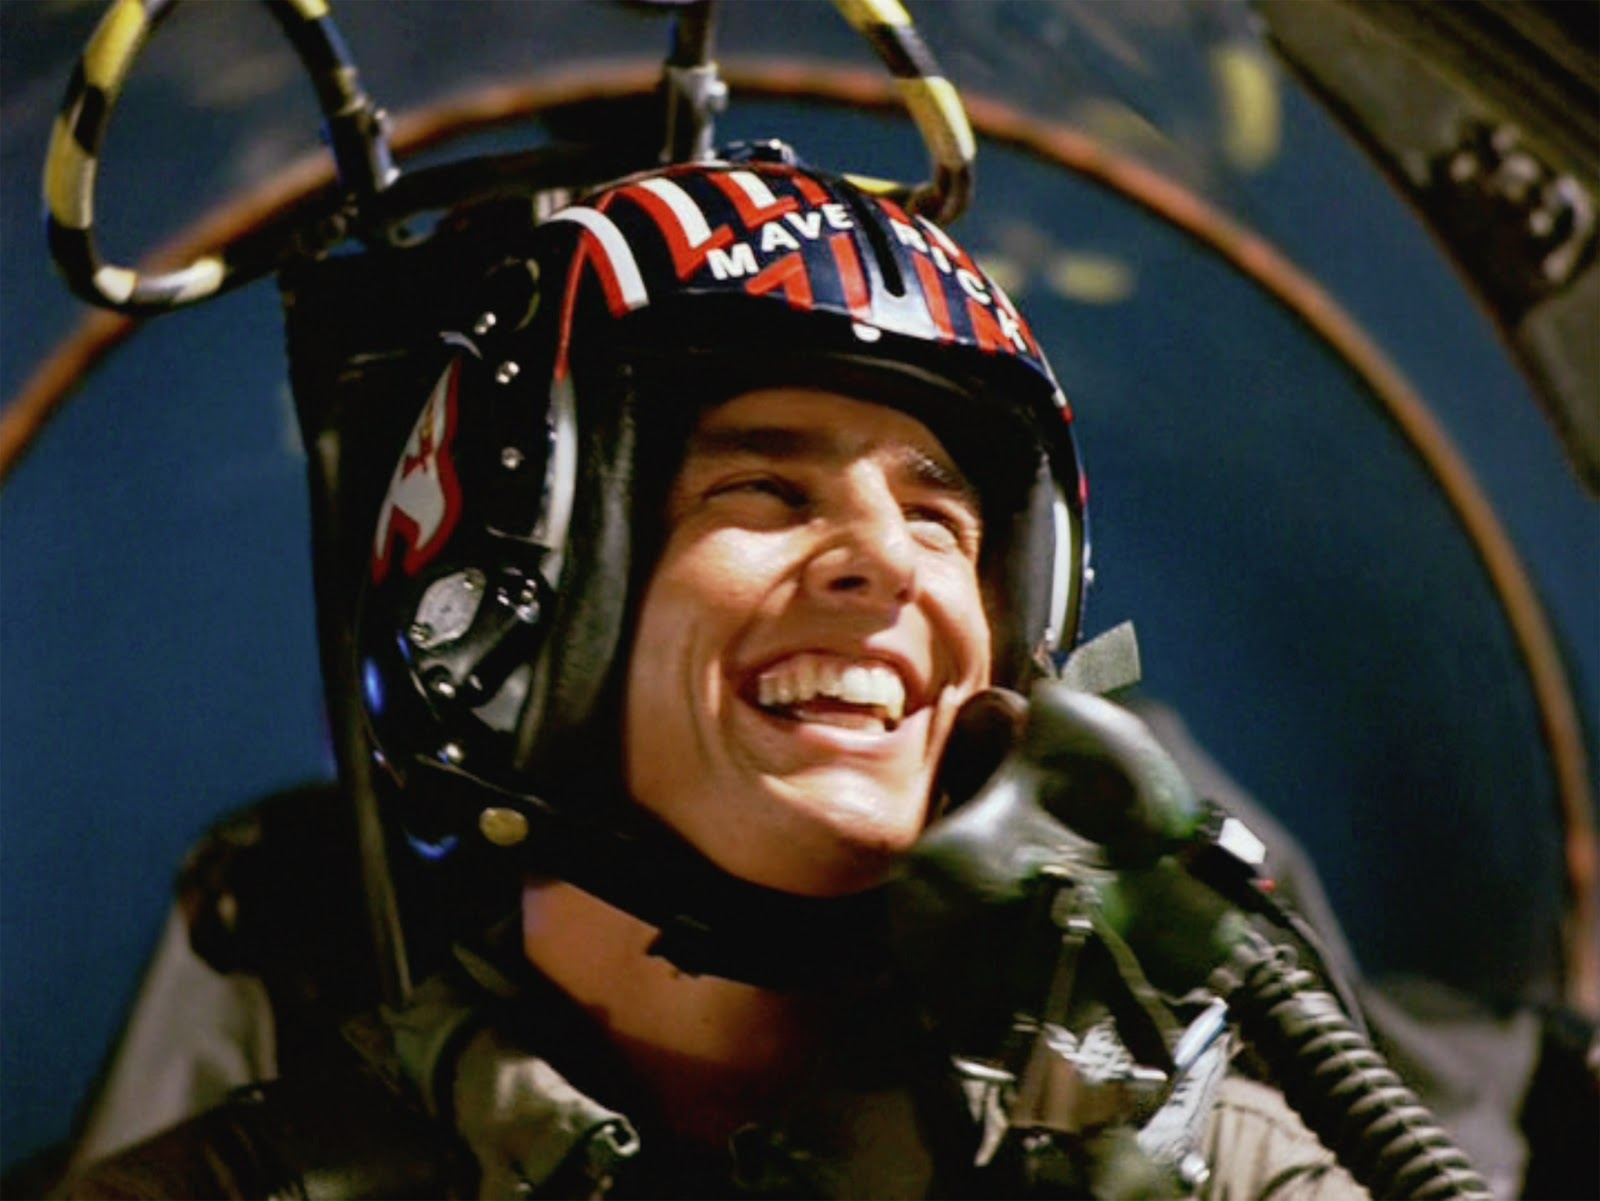 Top Gun 2 Set Photo Reveals Cruise Will Pilot A Deadly New Fighter Jet!